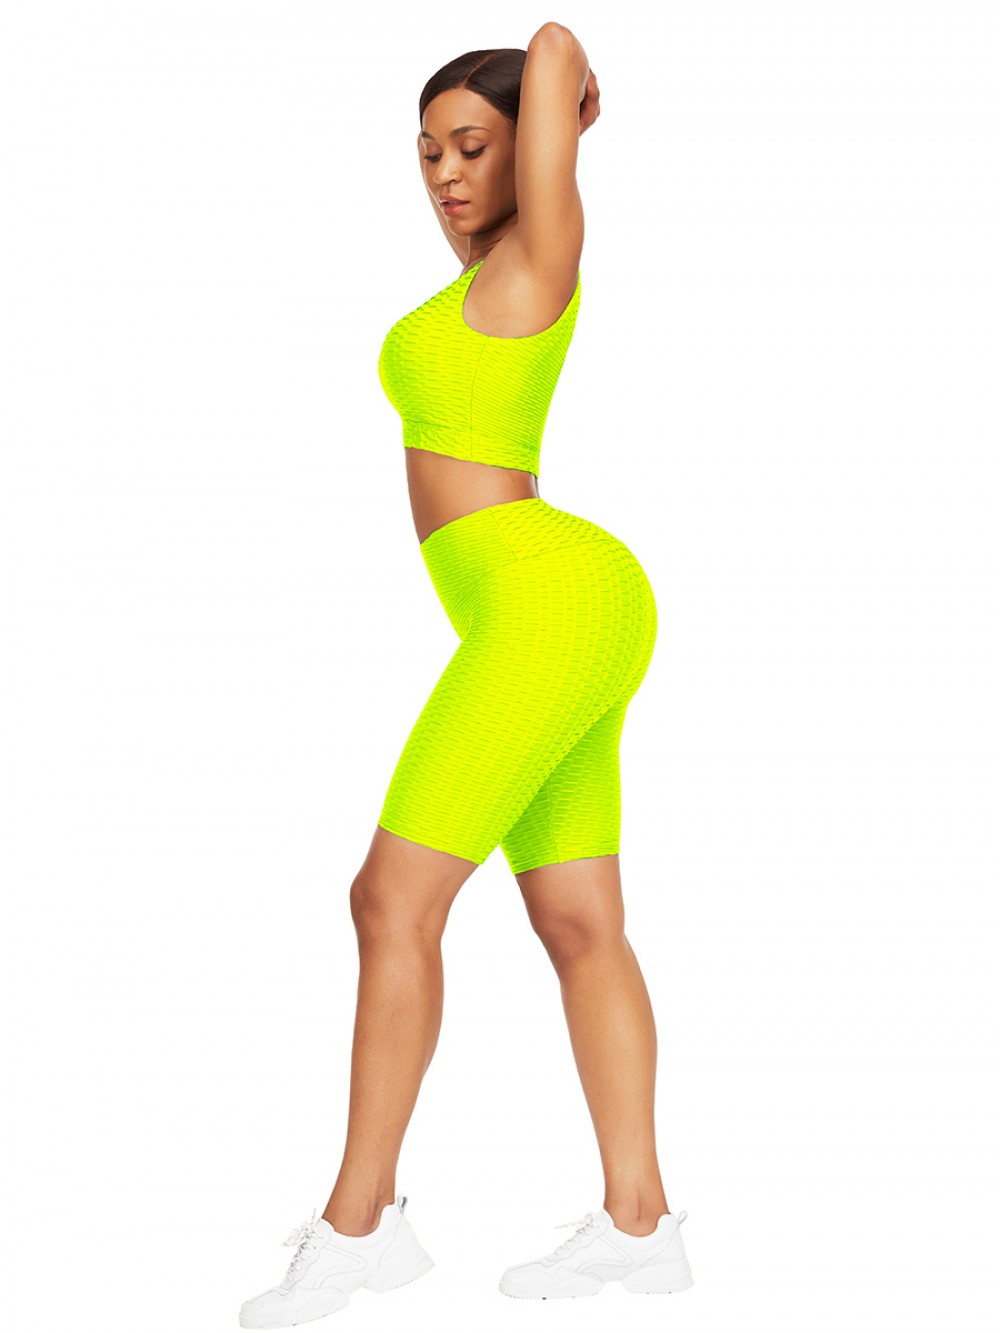 Sleek Yellow Scoop Neck Training Suits High Waist For Upscale